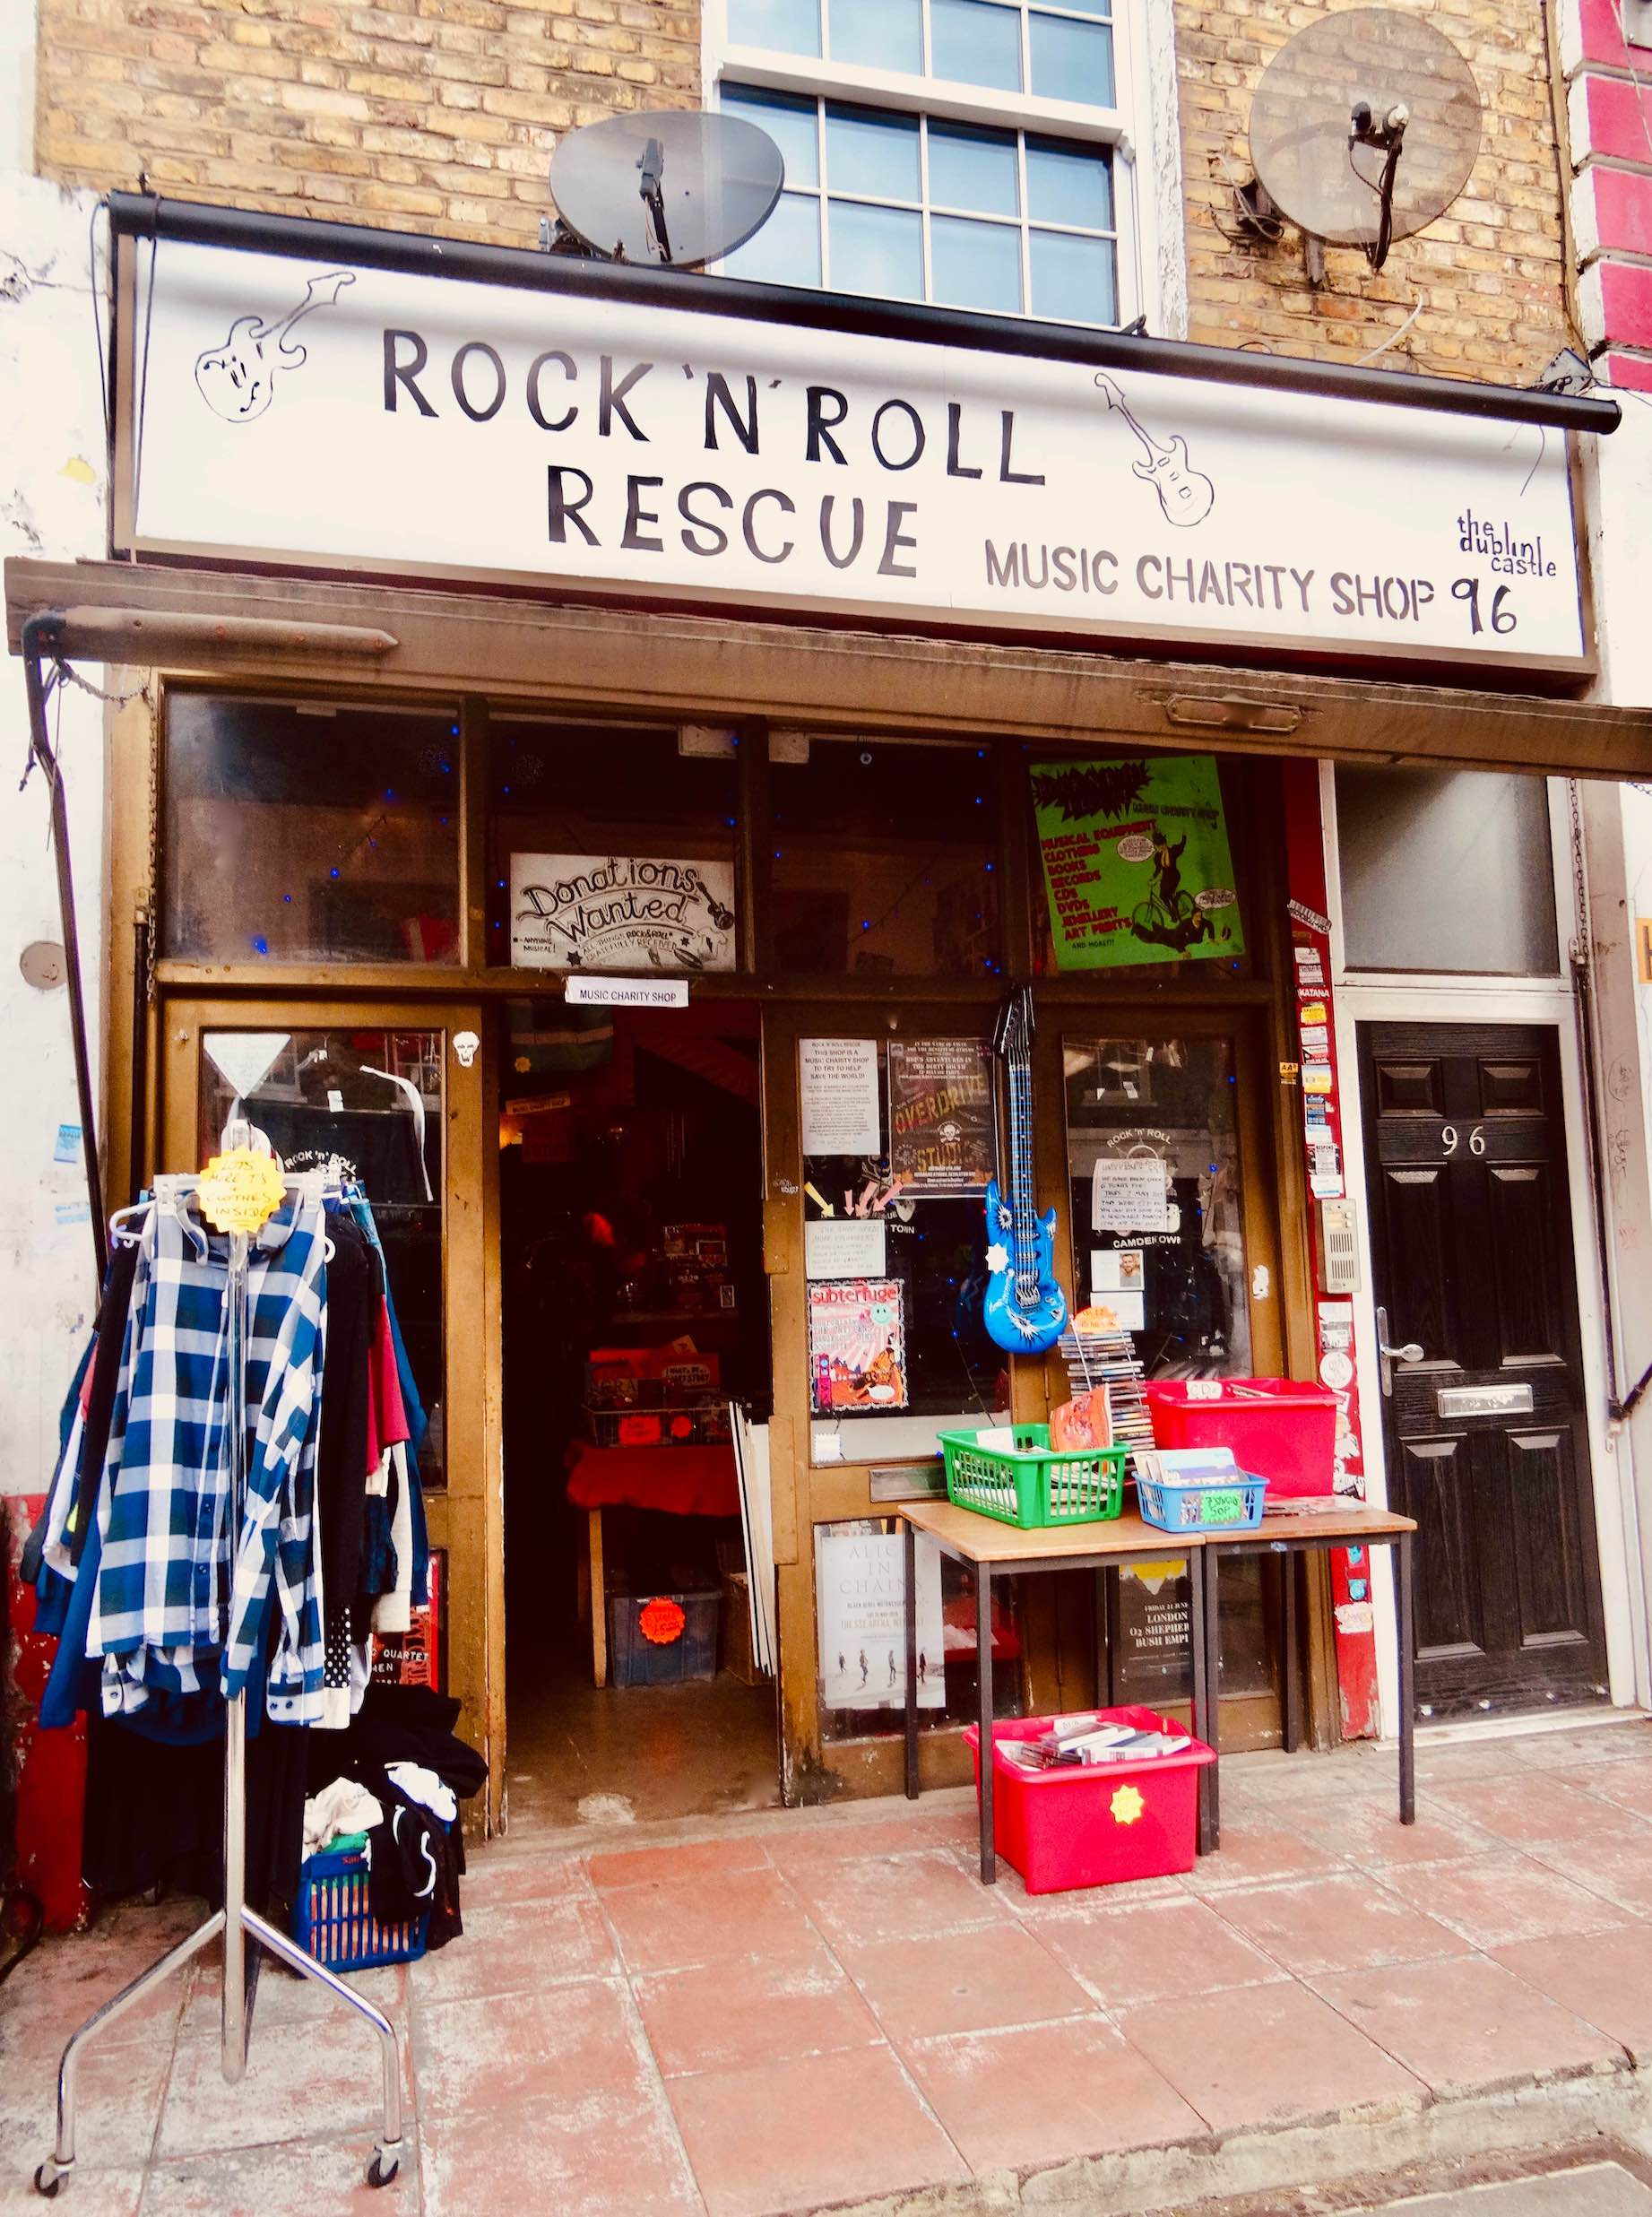 Rock 'n' Roll Rescue Music Charity Shop.